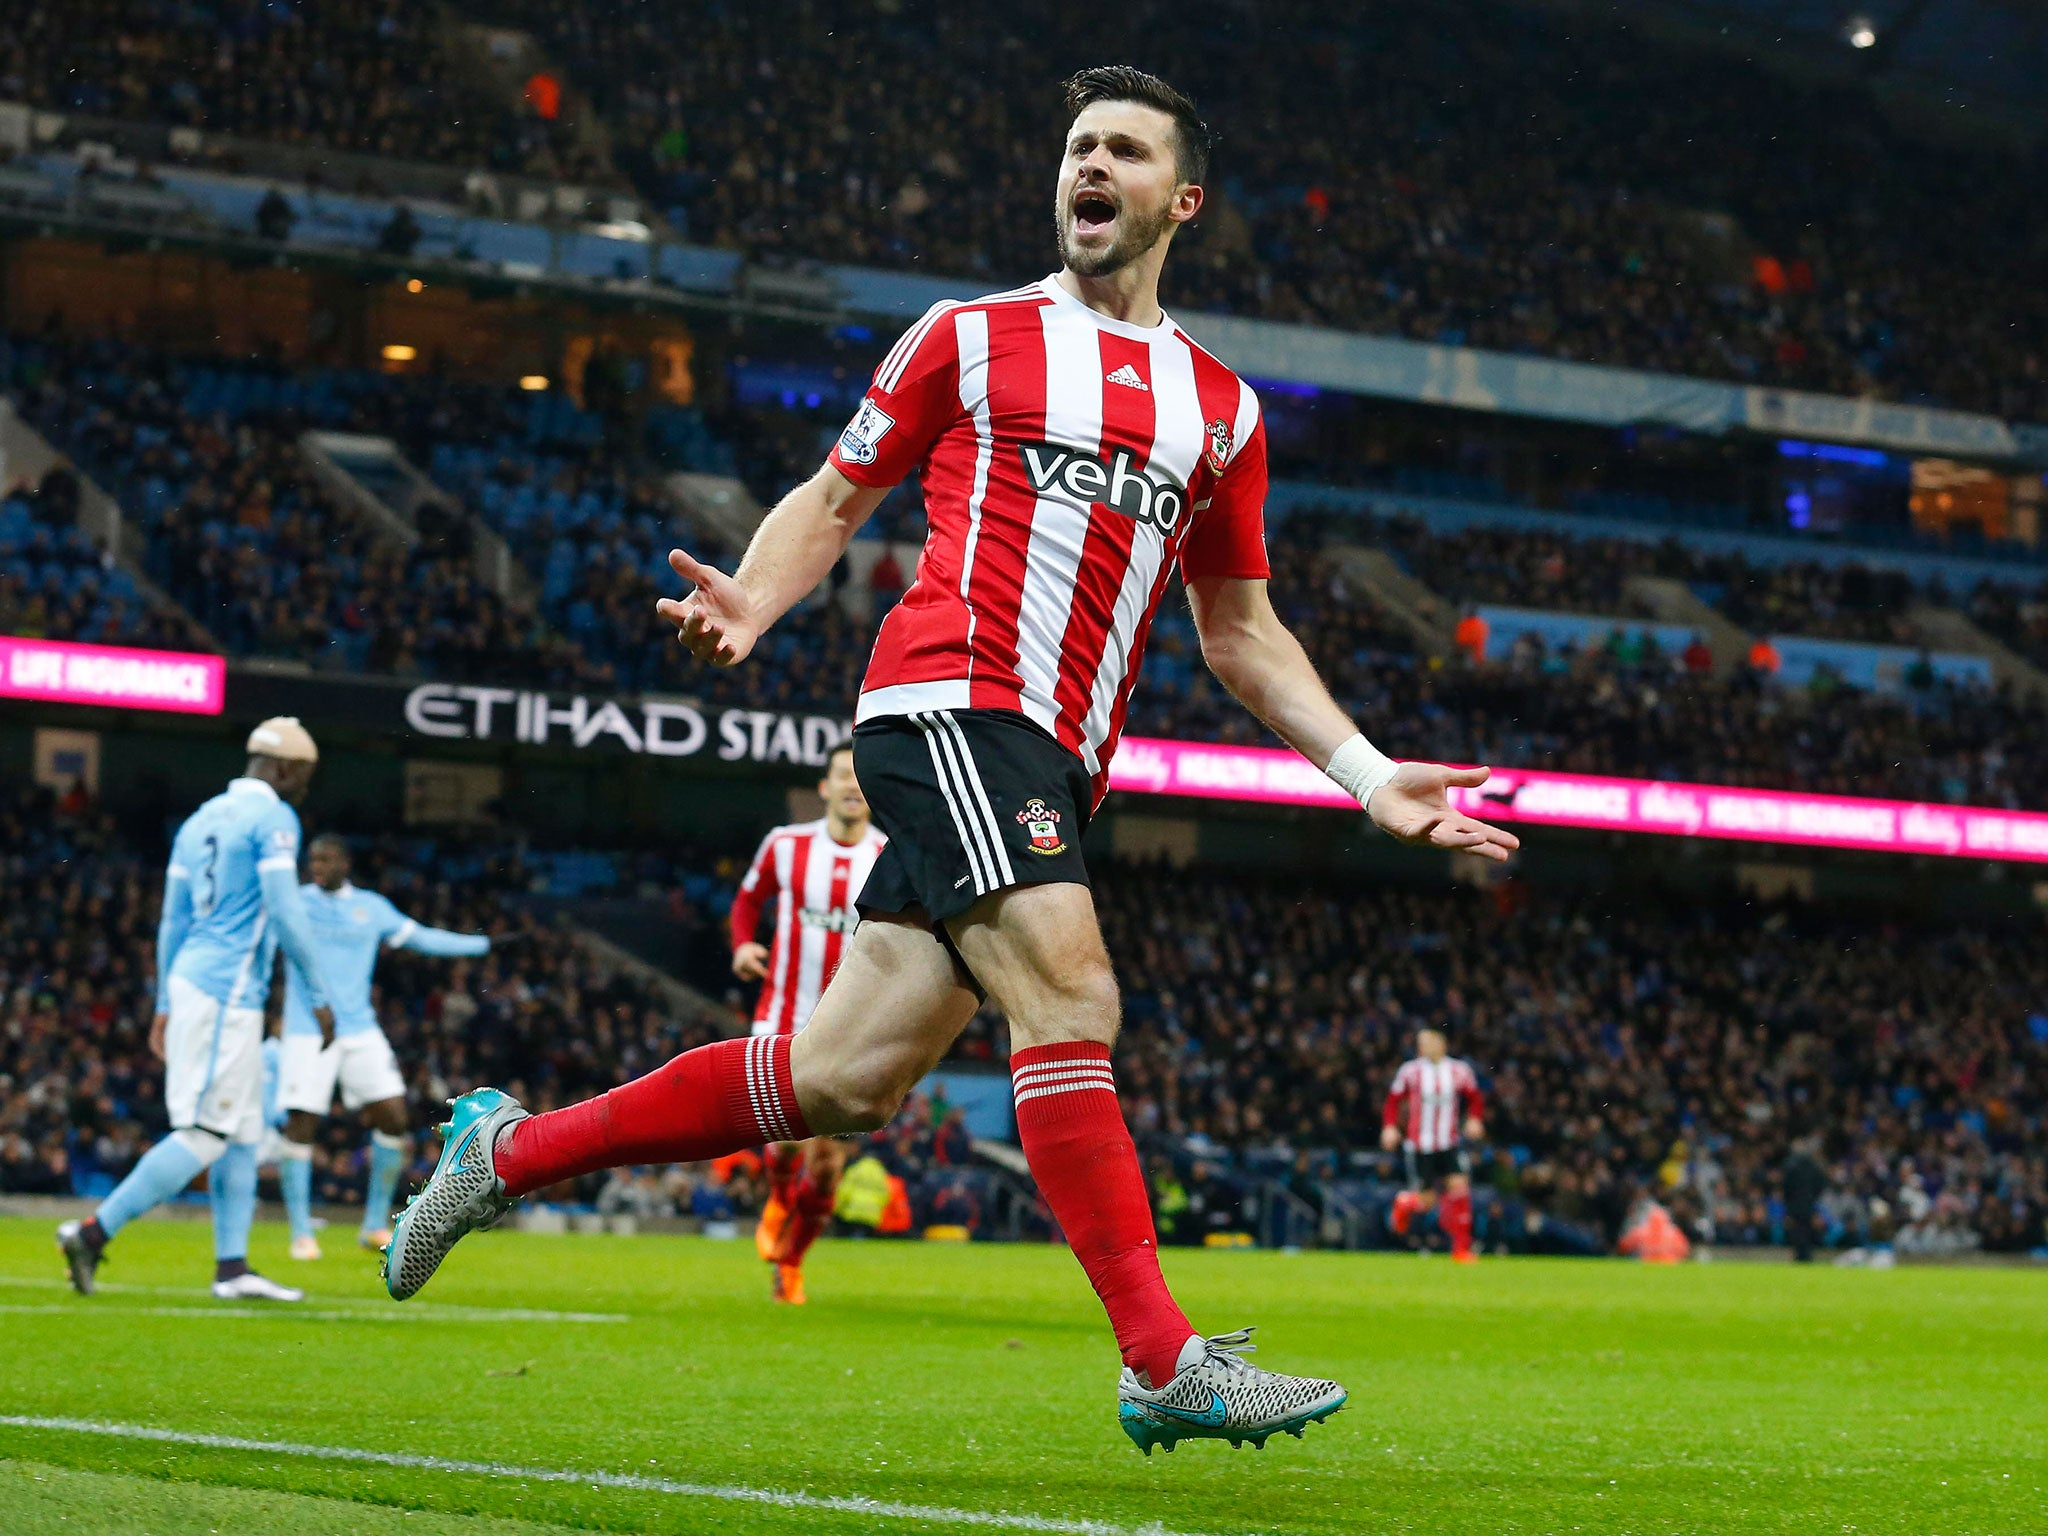 shane long to liverpool reds eye move for inaki williams